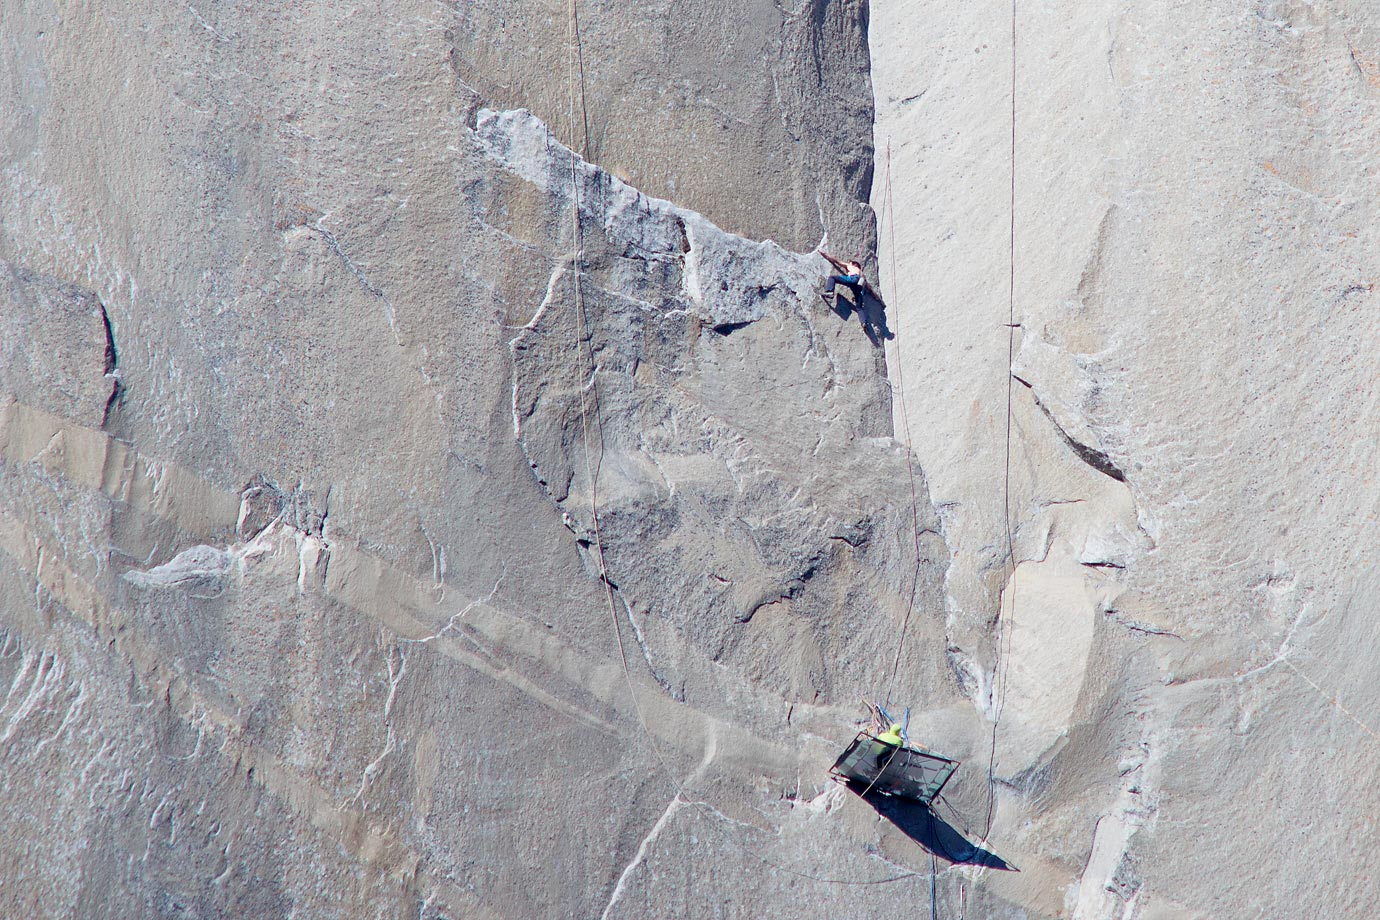 Kevin Jorgeson (shirtless) climbing the top of Pitch 17 while Tommy Caldwell (in yellow) belays below.